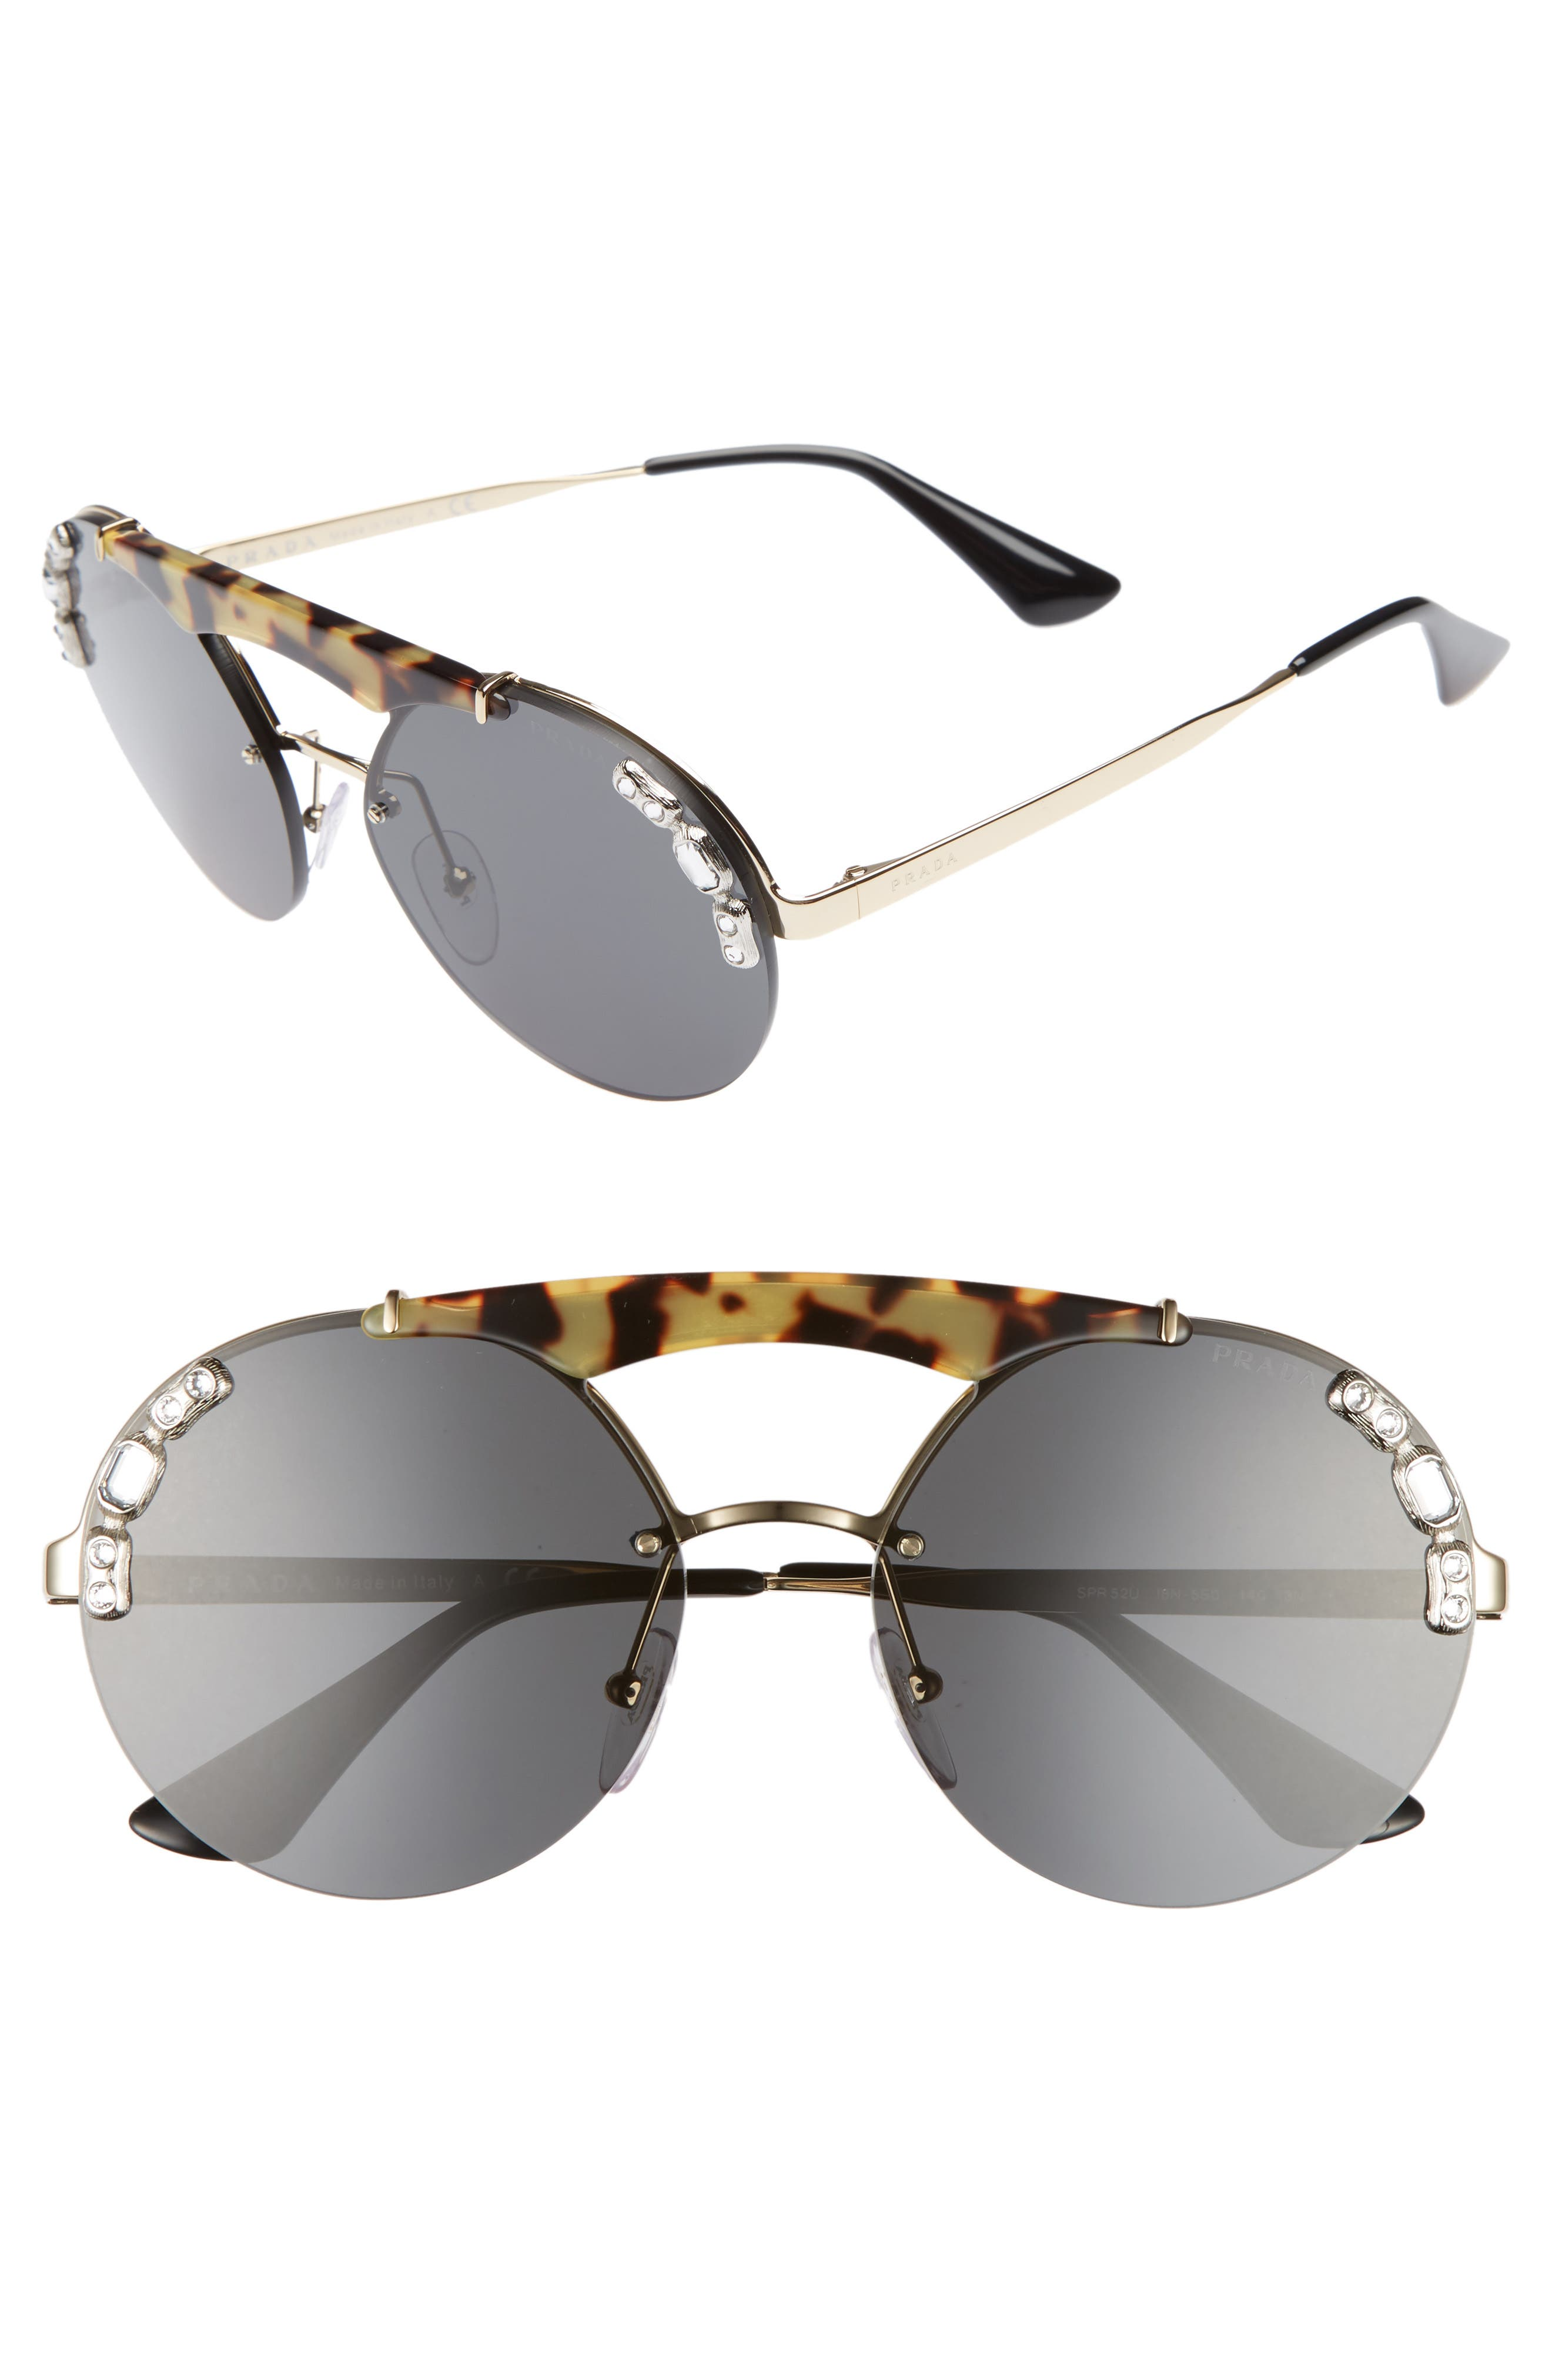 52mm Embellished Round Rimless Sunglasses,                             Main thumbnail 1, color,                             100